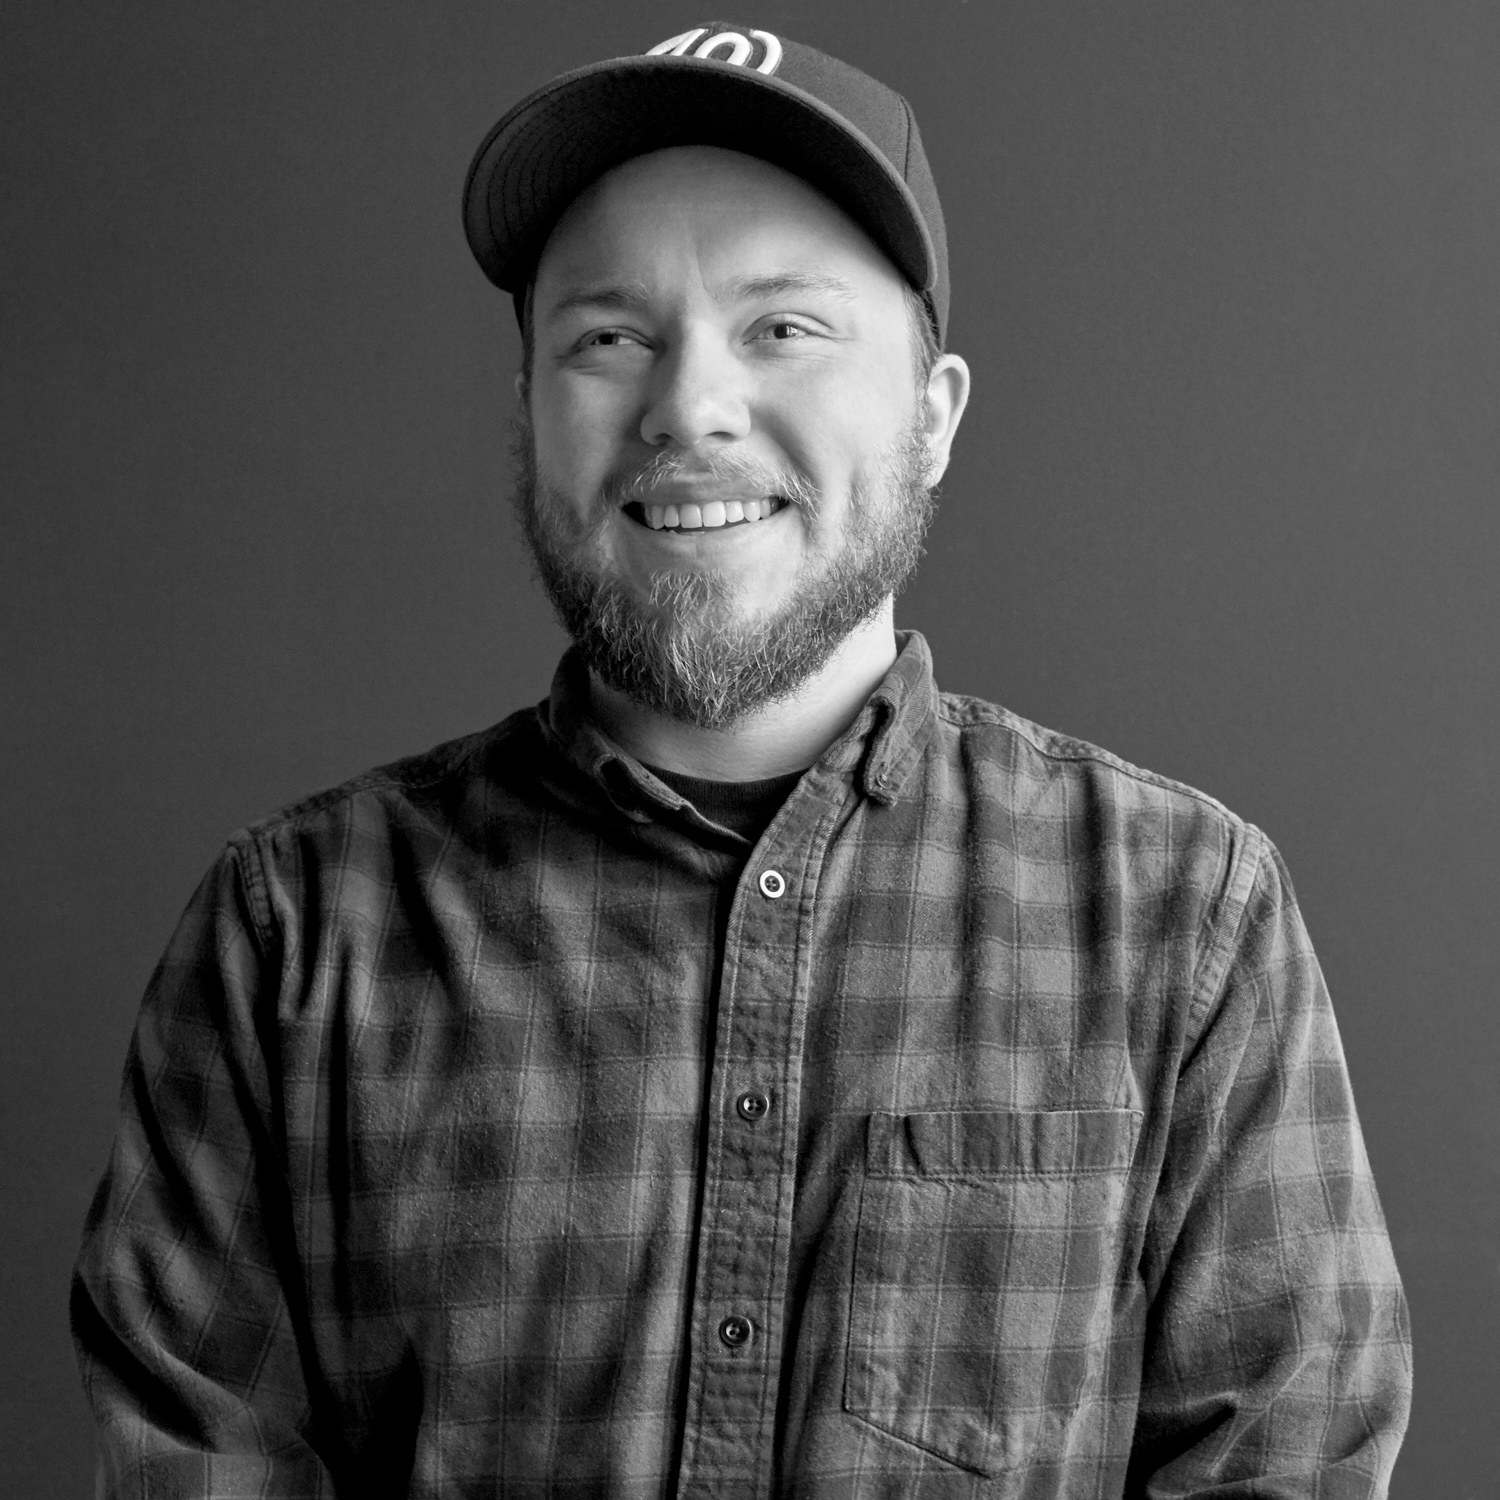 - Steve is a Photographer and Retoucher currently based in Buffalo NY. He loves everything Photography,Photoshop, and Food.